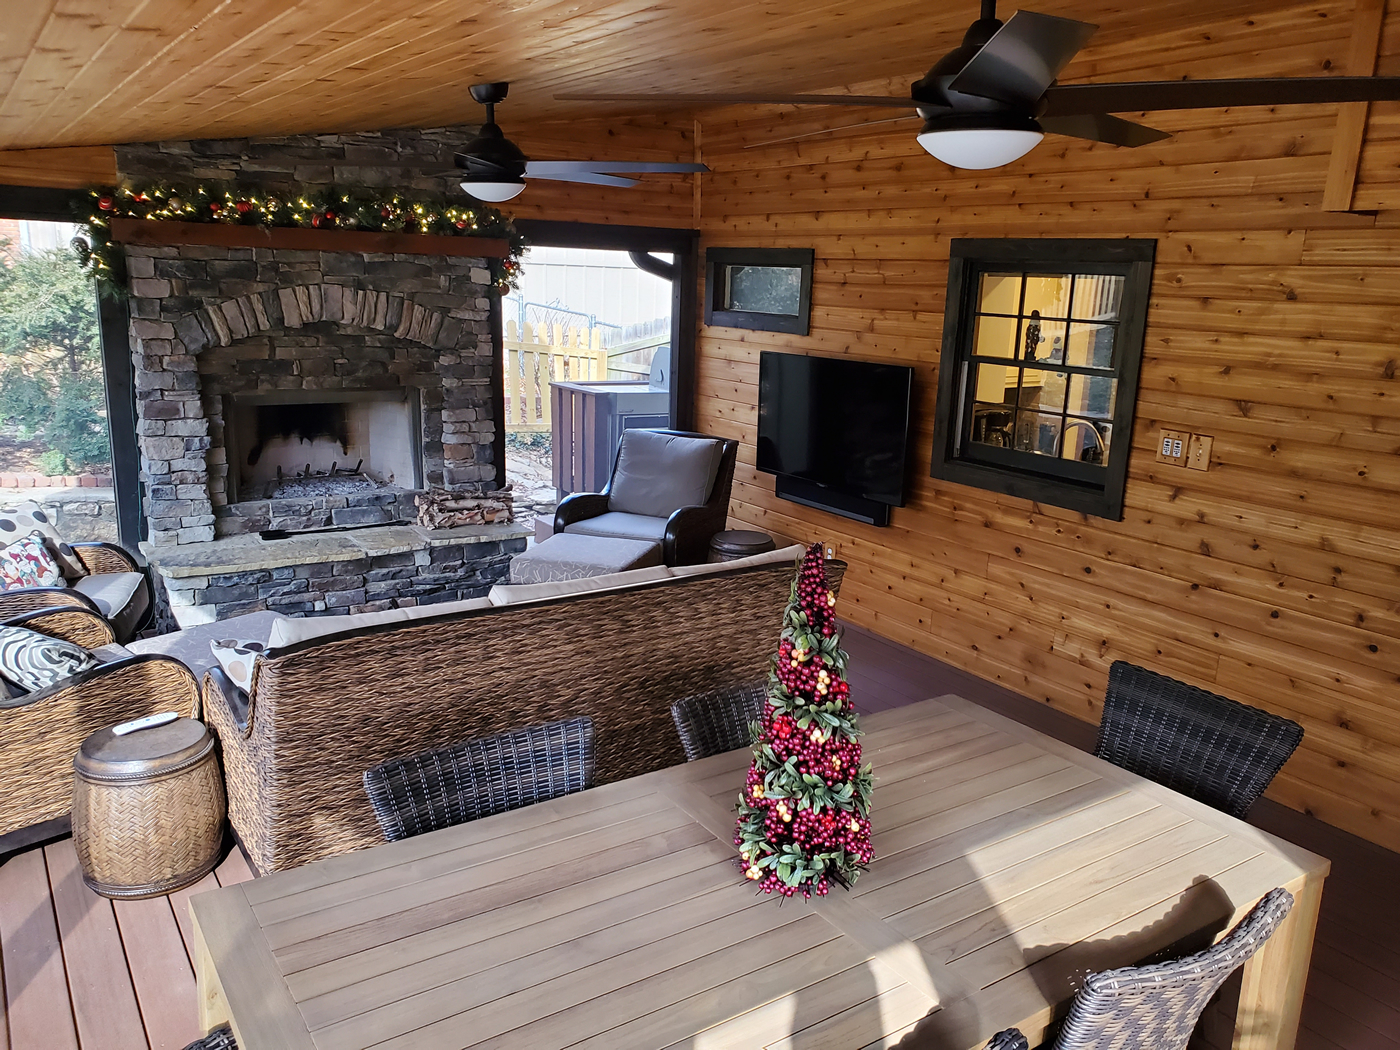 Lenexa screened porch with fireplace